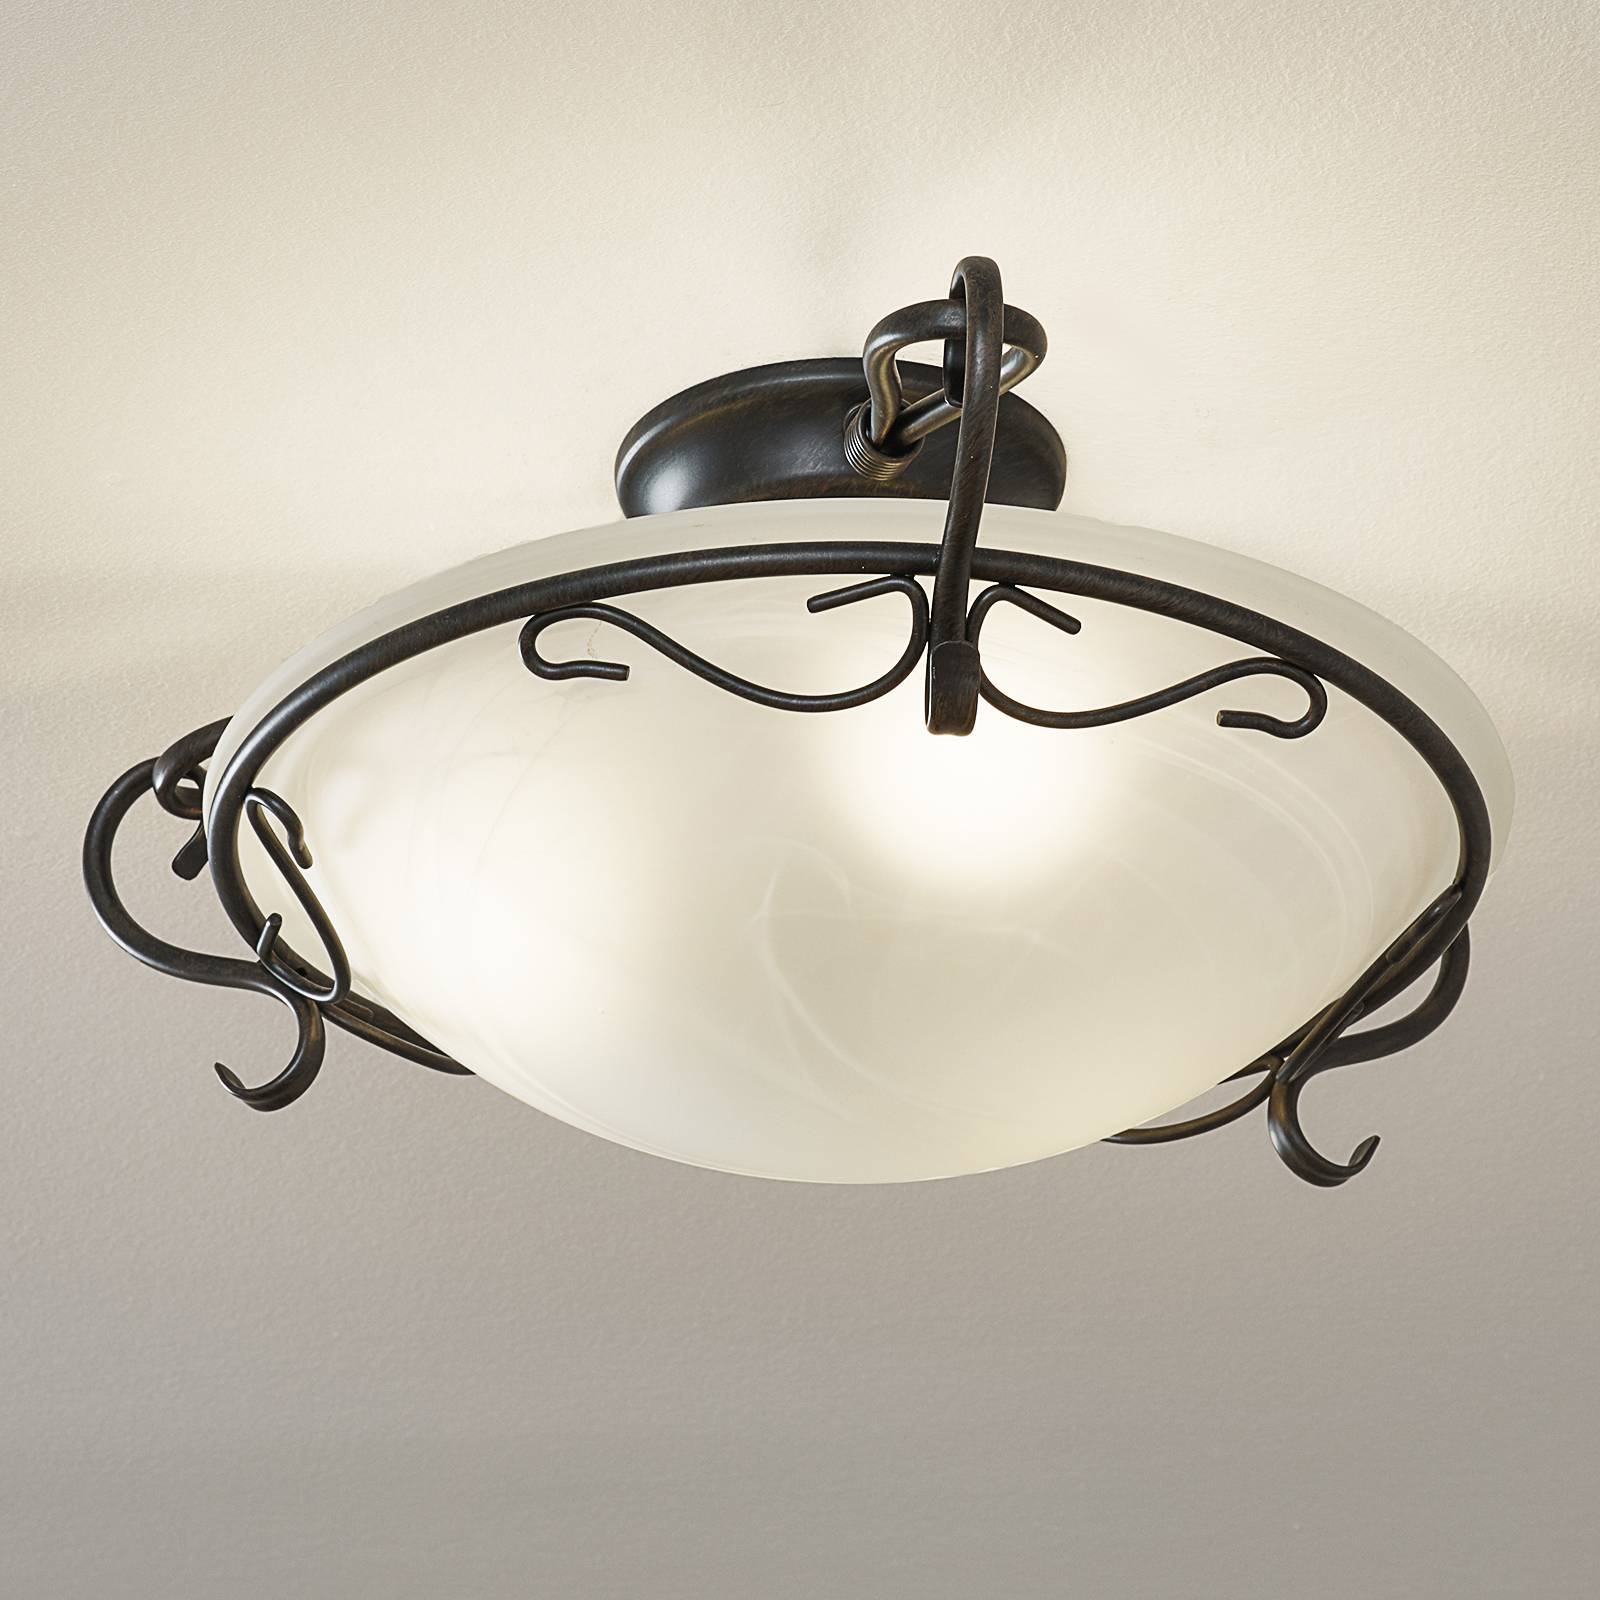 Venturi Ceiling Light 22 cm Antique Rust Colour from Fischer & Honsel